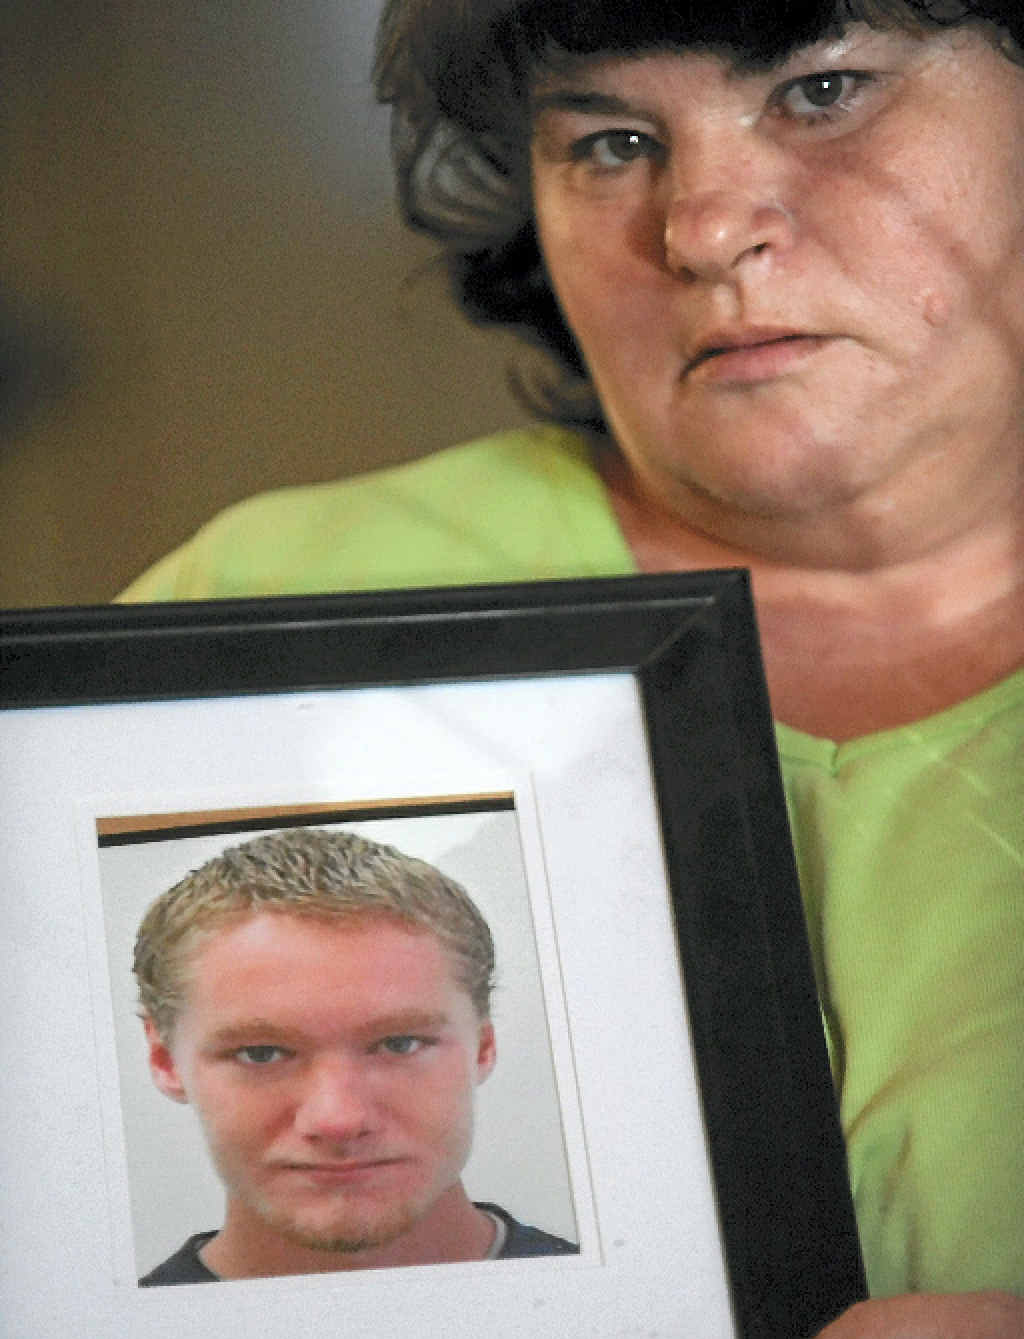 GRIEVING MOTHER: Helen Gordon says the prison system failed her son Leonard.